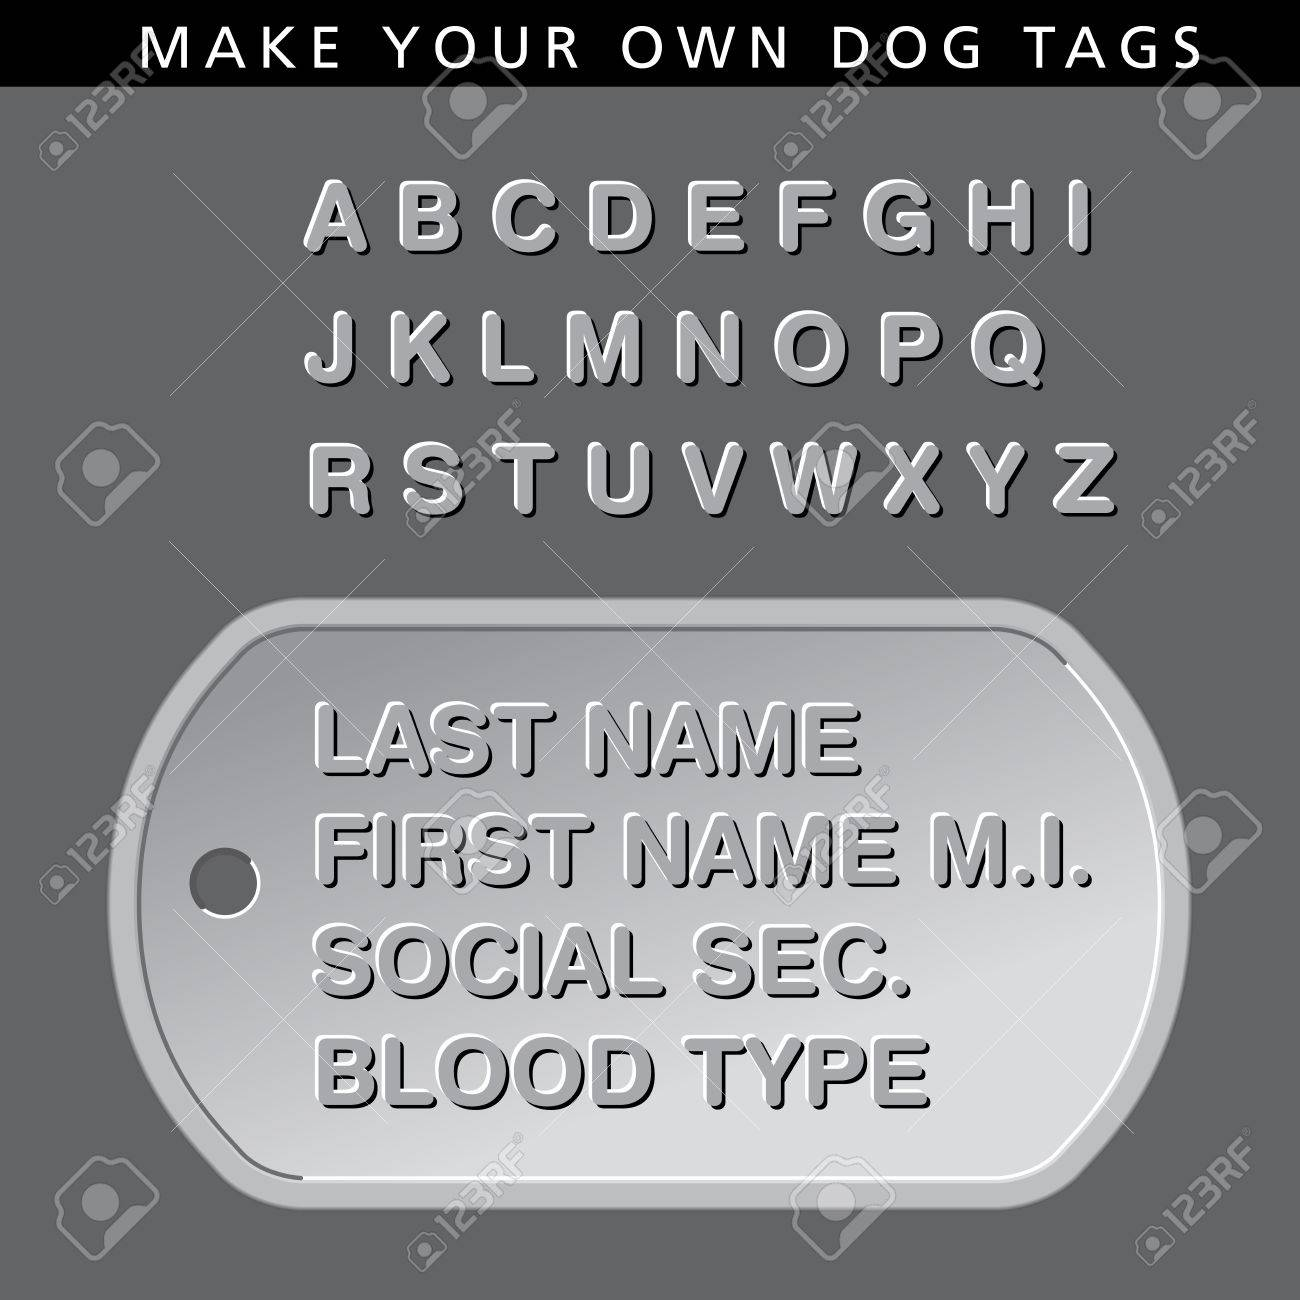 make your own message on this dog tag royalty free cliparts vectors